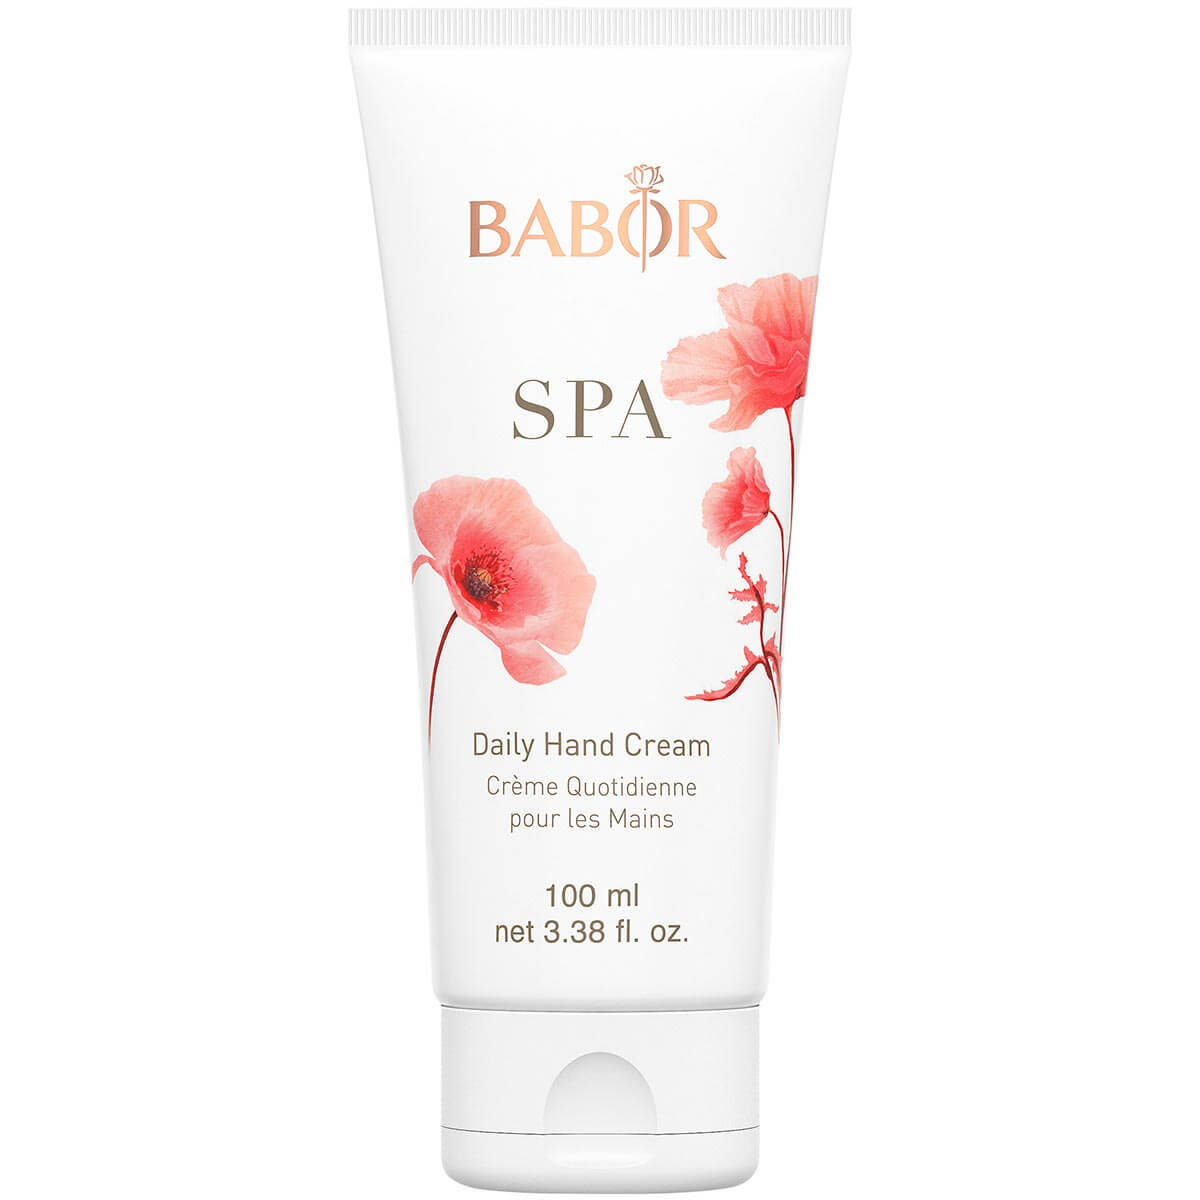 Крем для рук Babor SPA Daily Hand Cream Limited Edition 100 мл